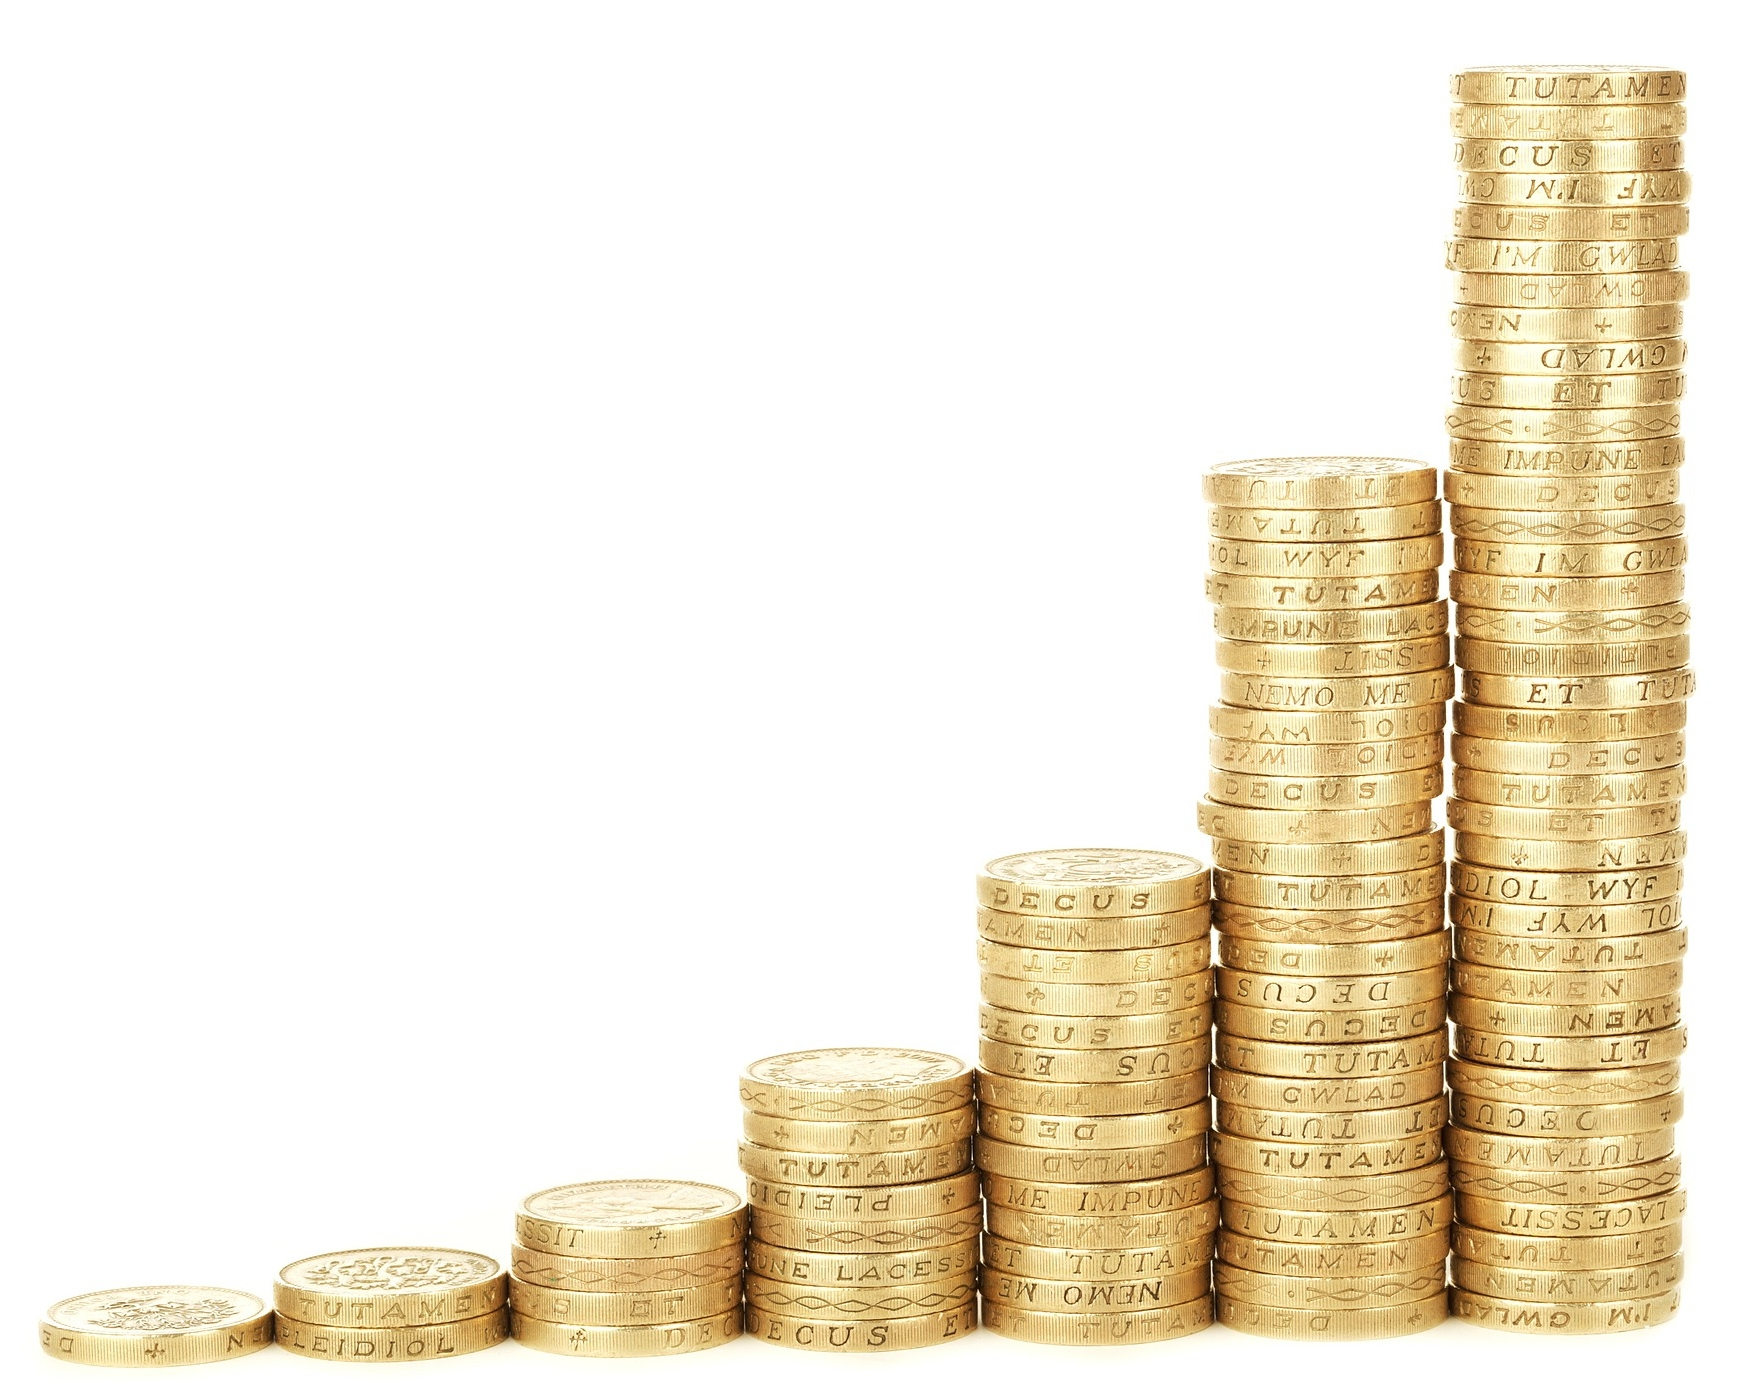 Do you think havingPrinciples + Wealth is impossible? -